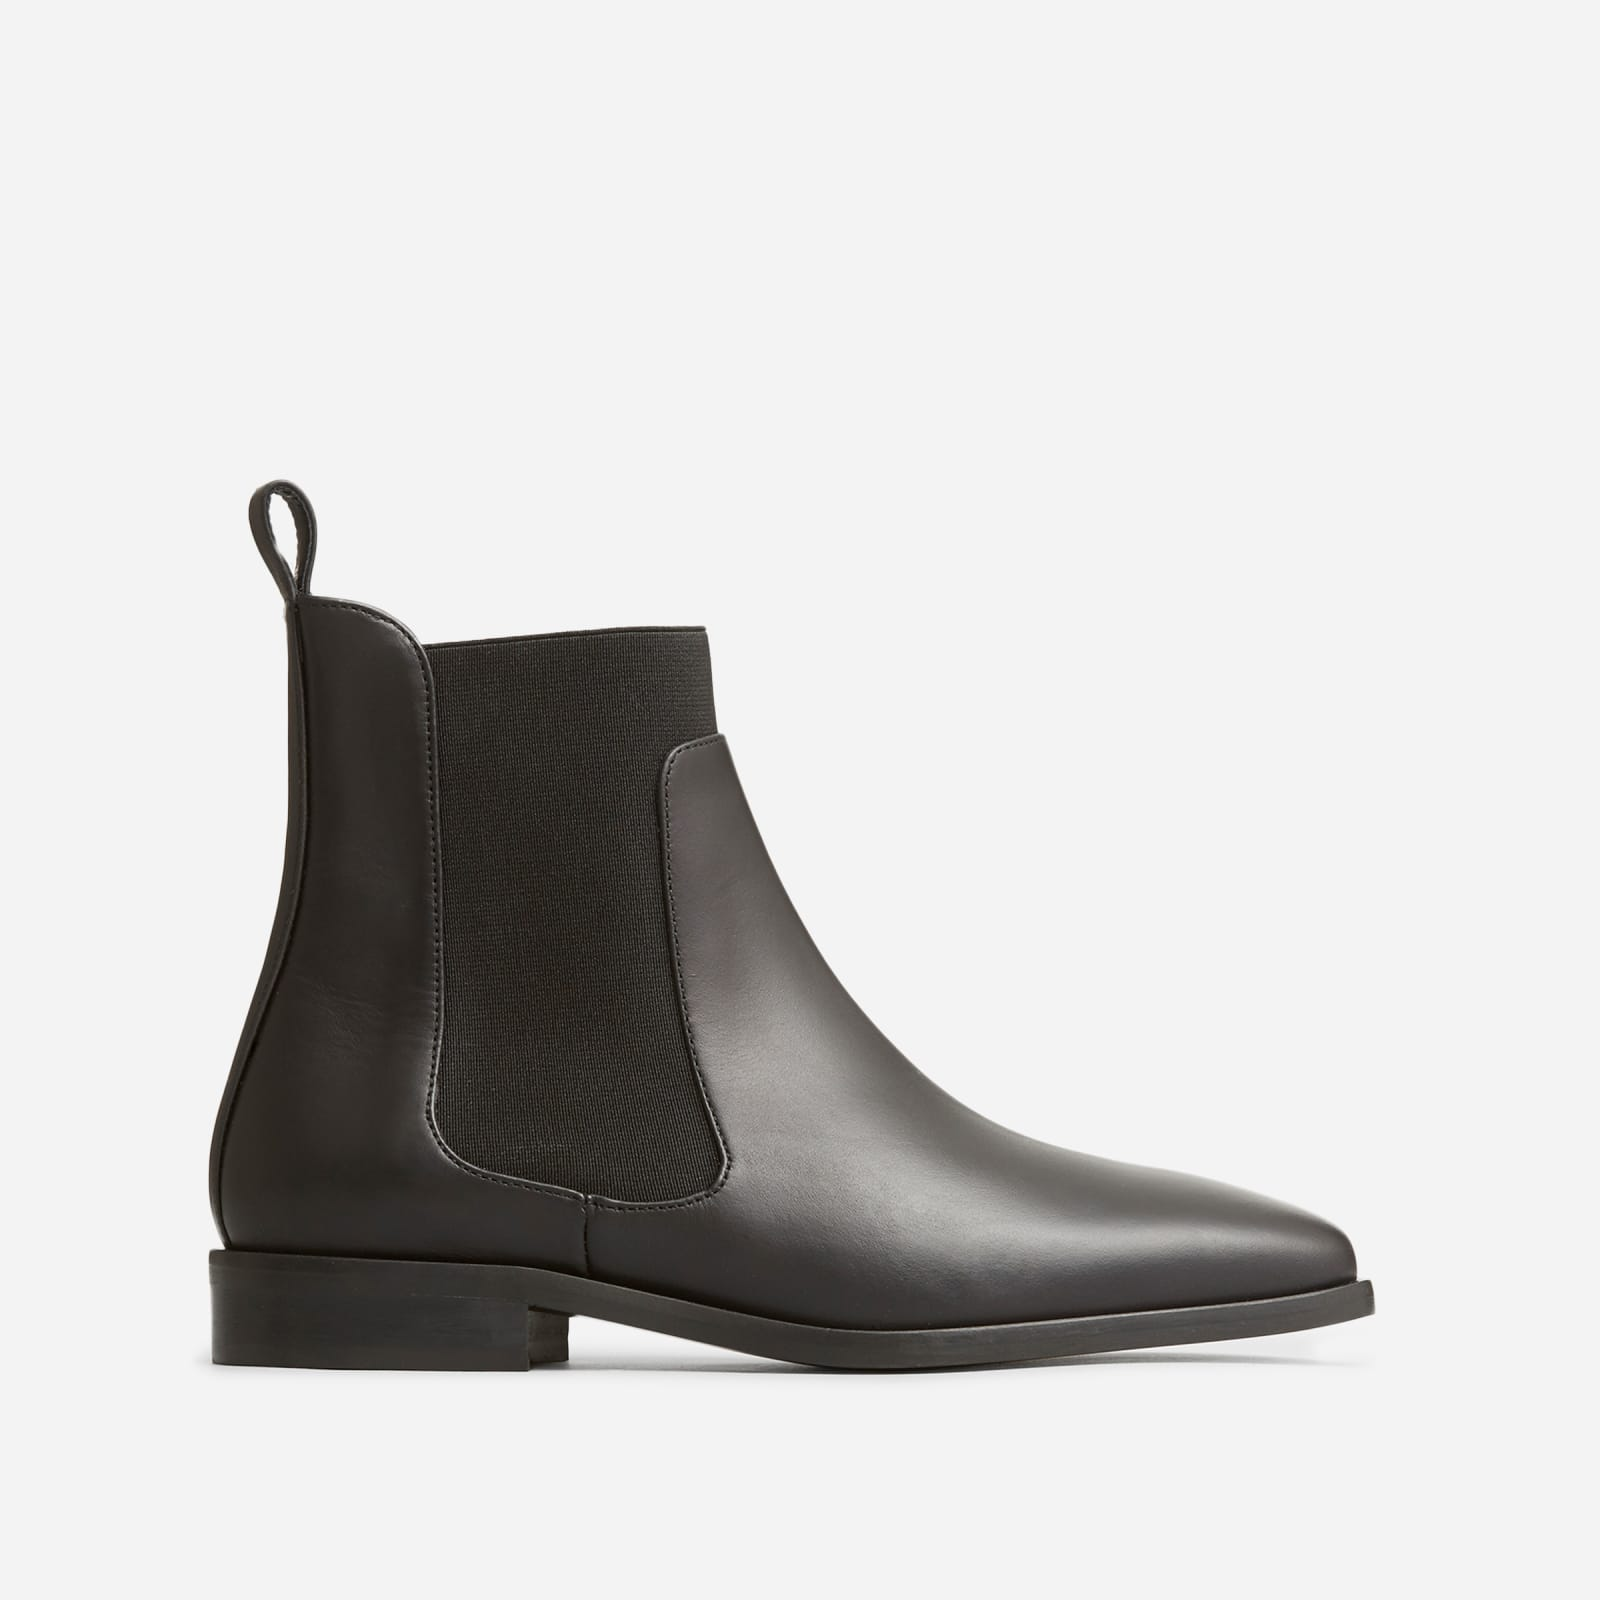 square toe chelsea boot by everlane in black, size 5